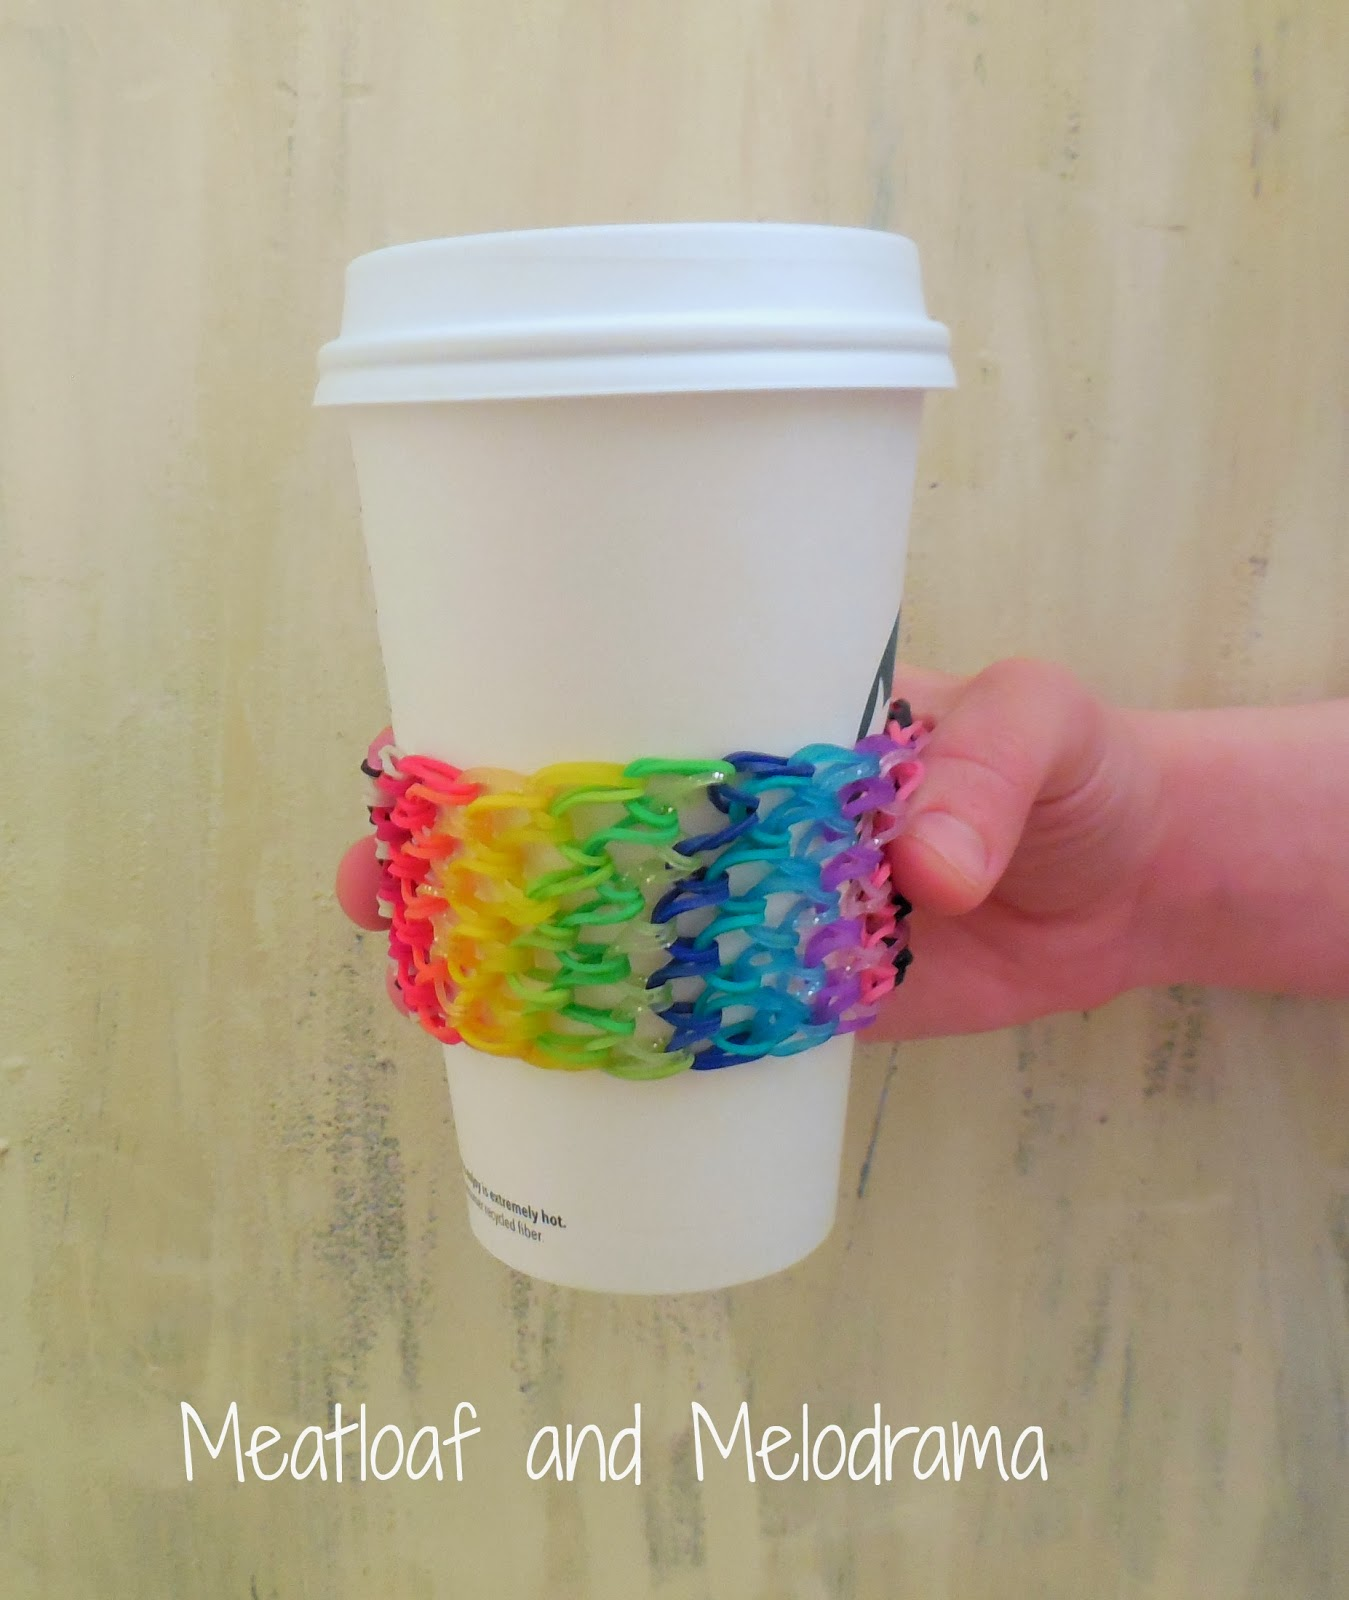 Rainbow Loom band cup cozy